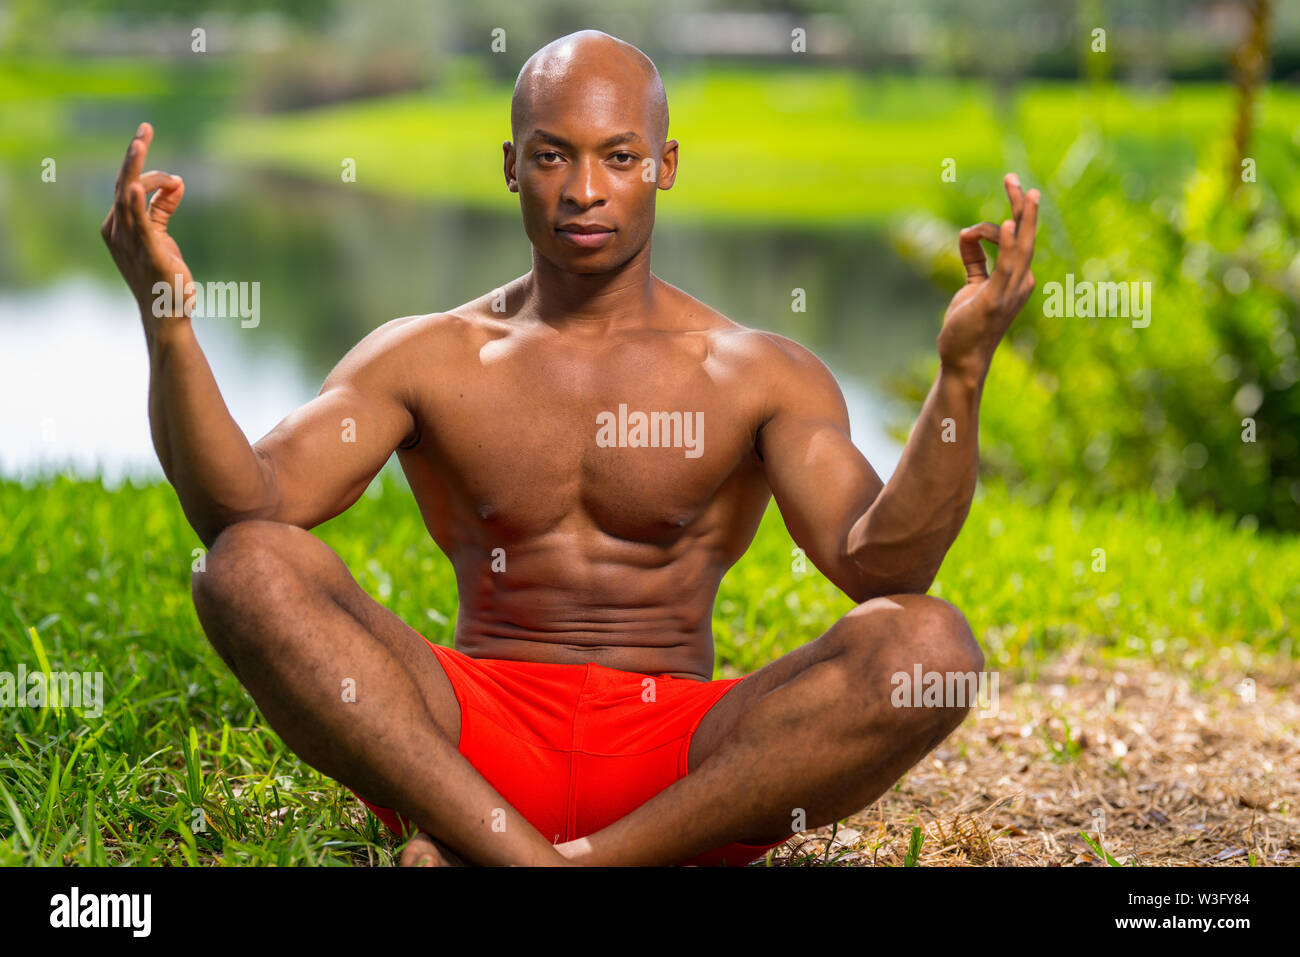 Photo of a fitness model in a yoga pose. Image lit with flash in a park setting - Stock Image